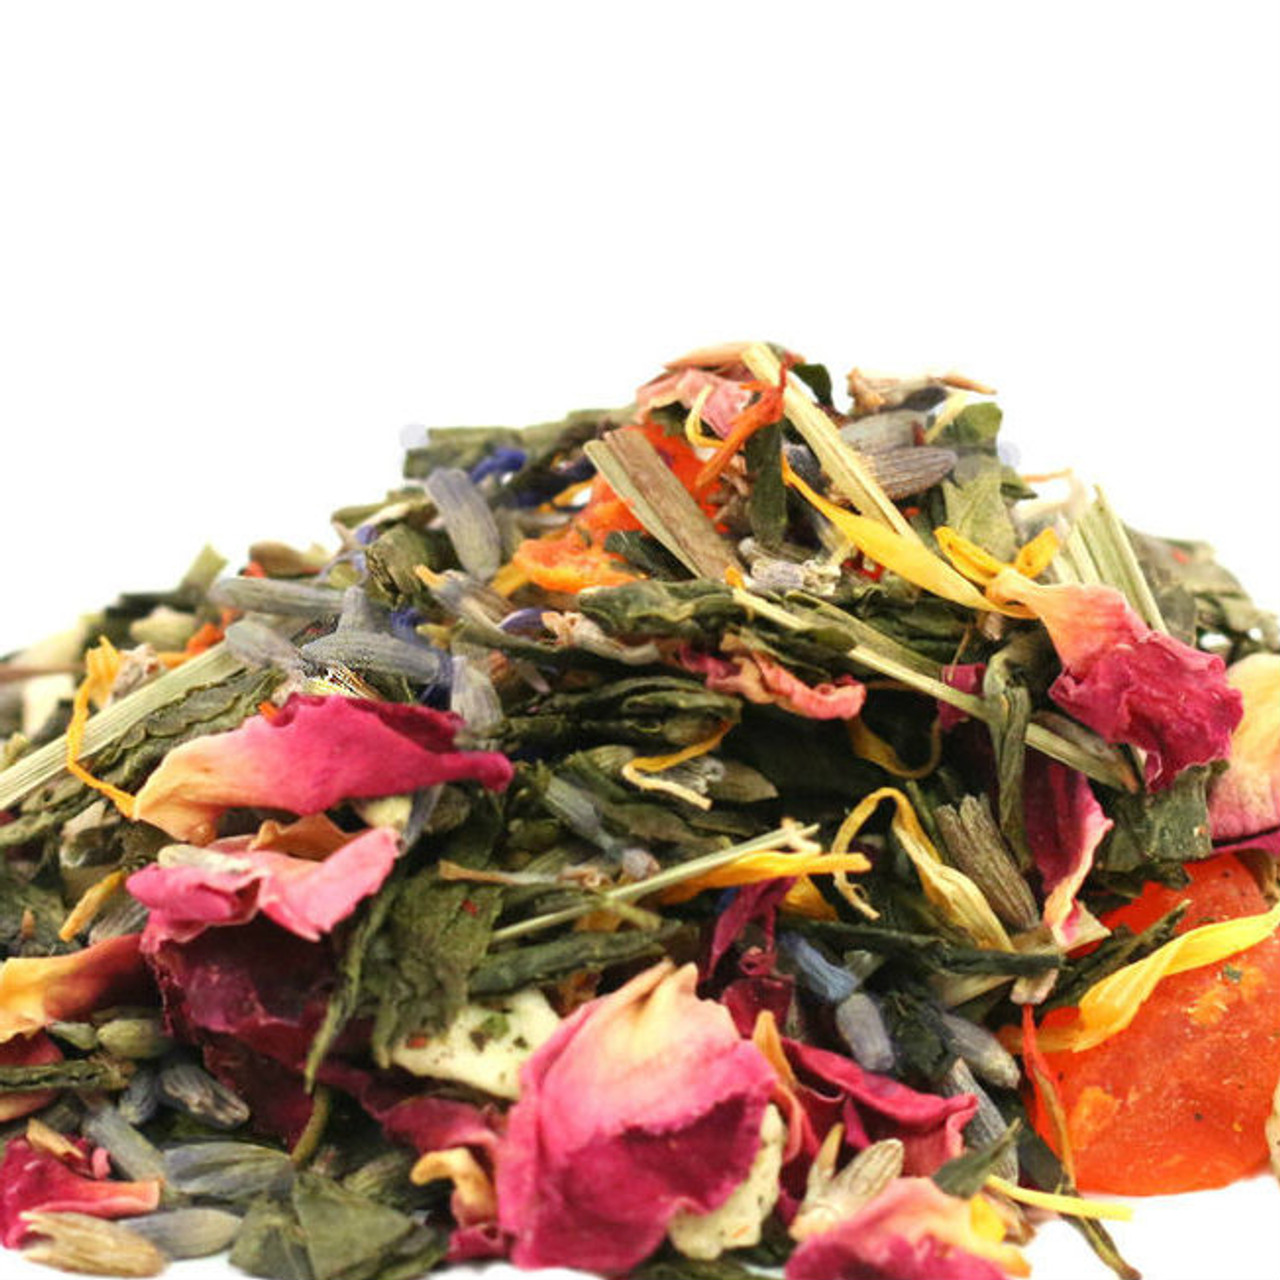 Our handcrafted Lavender Peach Green combines sweet, sun-kissed peaches, relaxing and soothing lavender and refreshing and invigorating Chinese sencha green tea to create a wonderfully balanced and lightly caffeinated tea. Spring and summer flavors come to life when steeped hot or brewed cold and it tastes great either way.